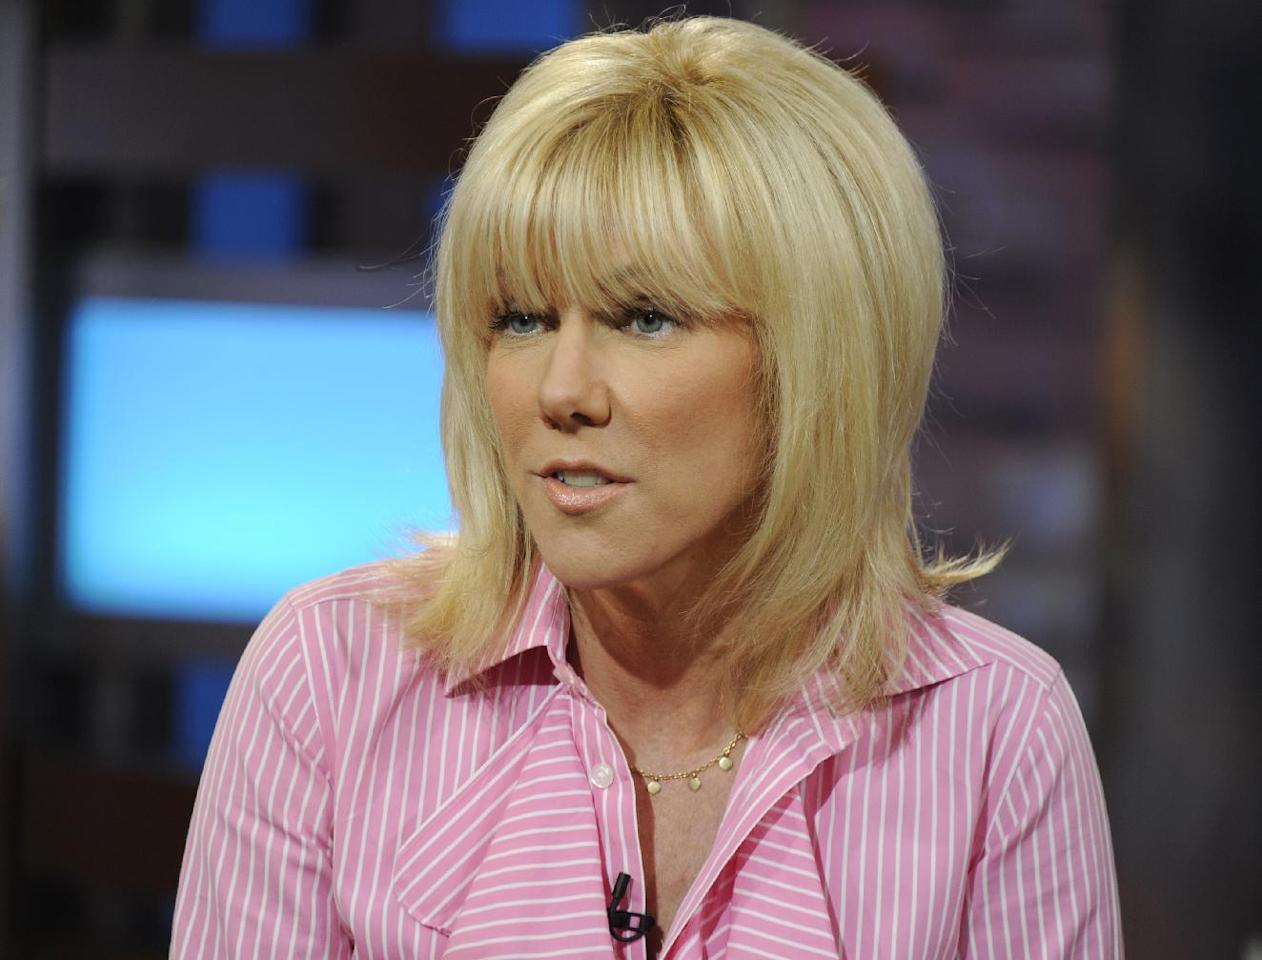 """This image released by ABC shows Rielle Hunter during an interview on the morning show """"Good Morning America,"""" Tuesday, June 26, 2012 in New York. Hunter says she and former presidential candidate John Edwards have ended their relationship. Hunter told ABC's """"Good Morning America"""" on Tuesday that she and Edwards were still a couple until late last week, as details from Hunter's memoir """"What Really Happened: John Edwards, Our Daughter and Me,"""" became public. The breakup was painful, but Hunter said Edwards will still be involved with their daughter, Quinn, who is 4 years old and lives with Hunter. (AP Photo/ABC, Ida Mae Astute)"""